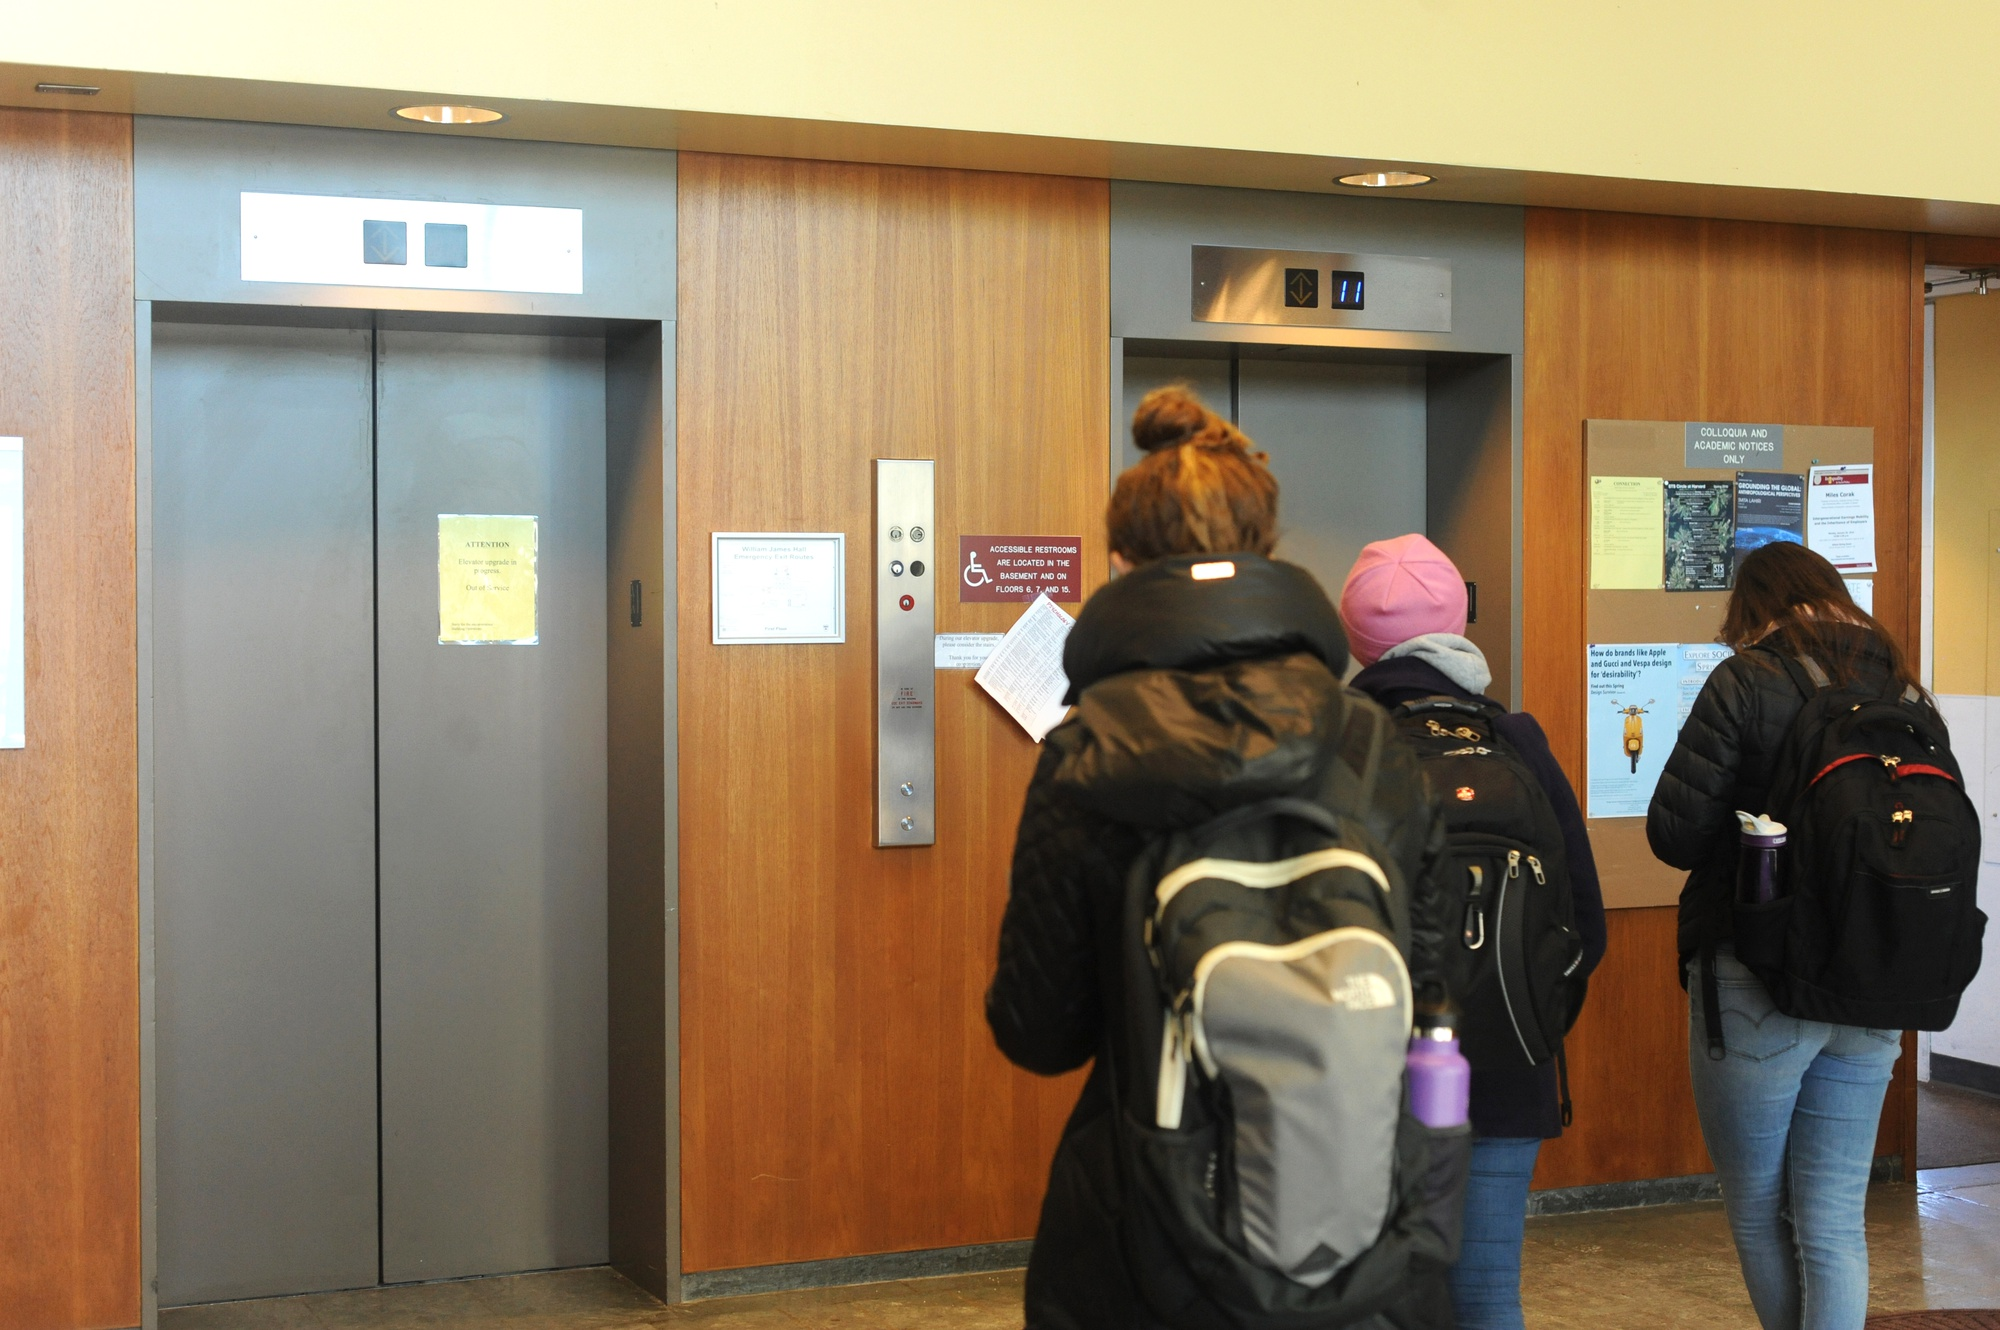 Students wait for one of the two working elevators in Harvard's William James Hall to arrive on the first floor Monday afternoon. The building's three elevators are undergoing repairs one at a time.